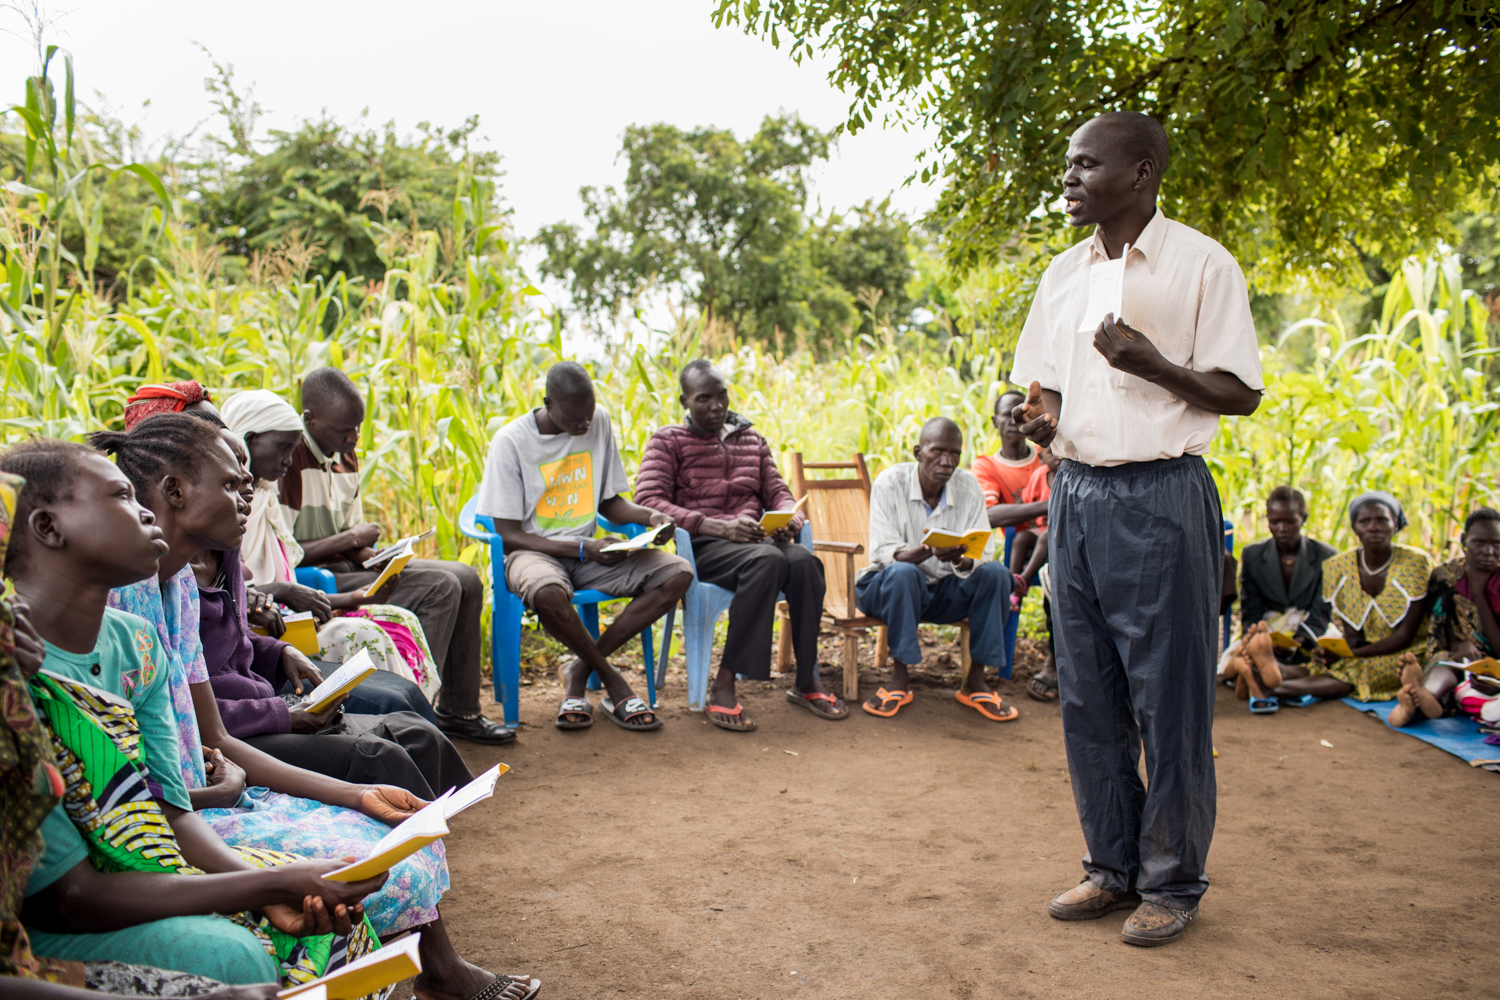 SE Field Officer Matthew Aju trains Struggle savings group. Photo by Esther Havens